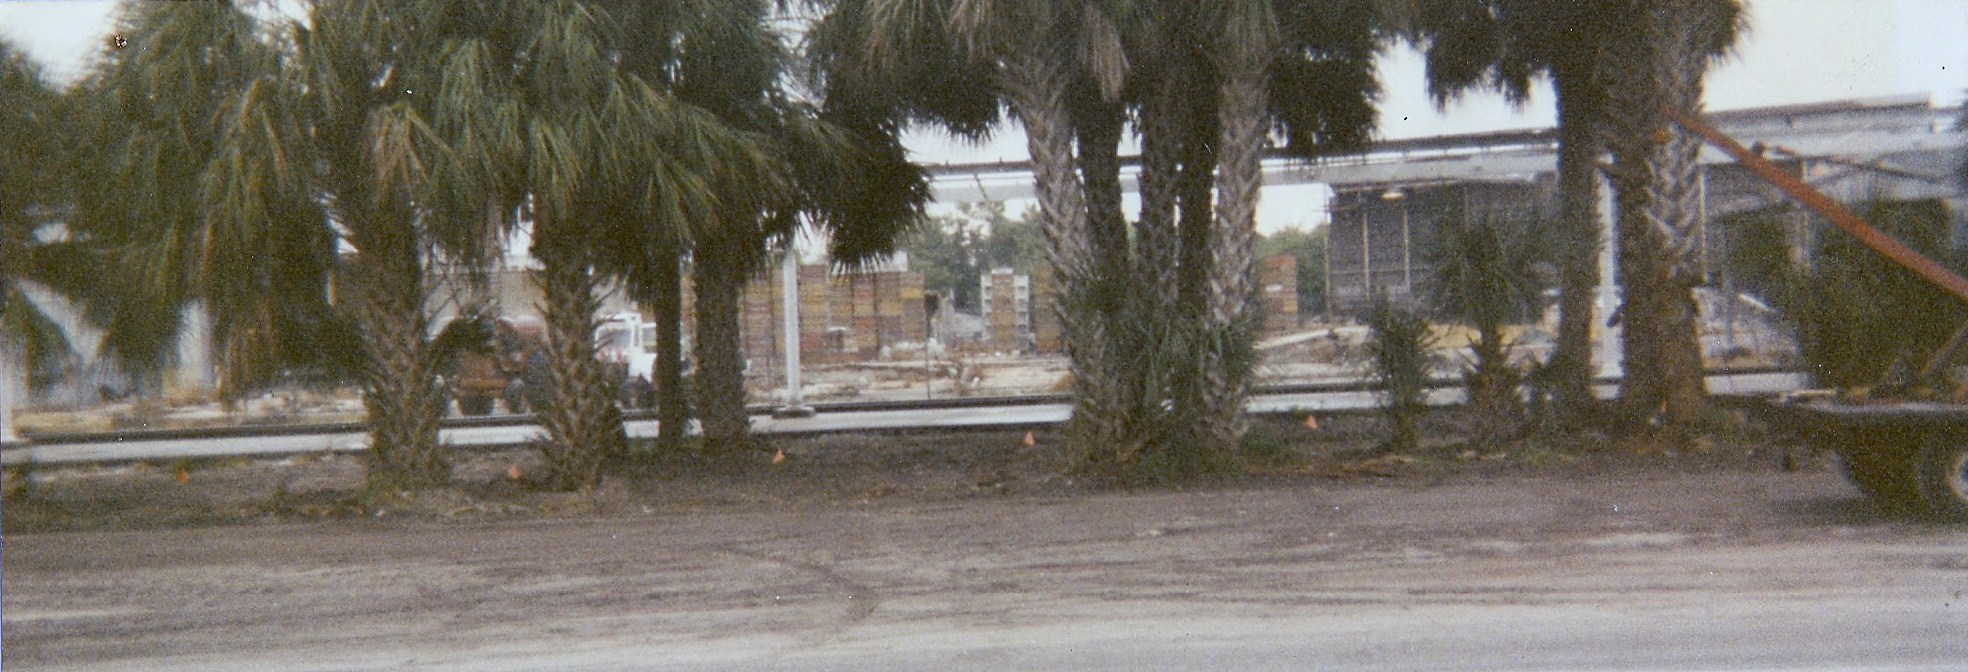 winter haven train station